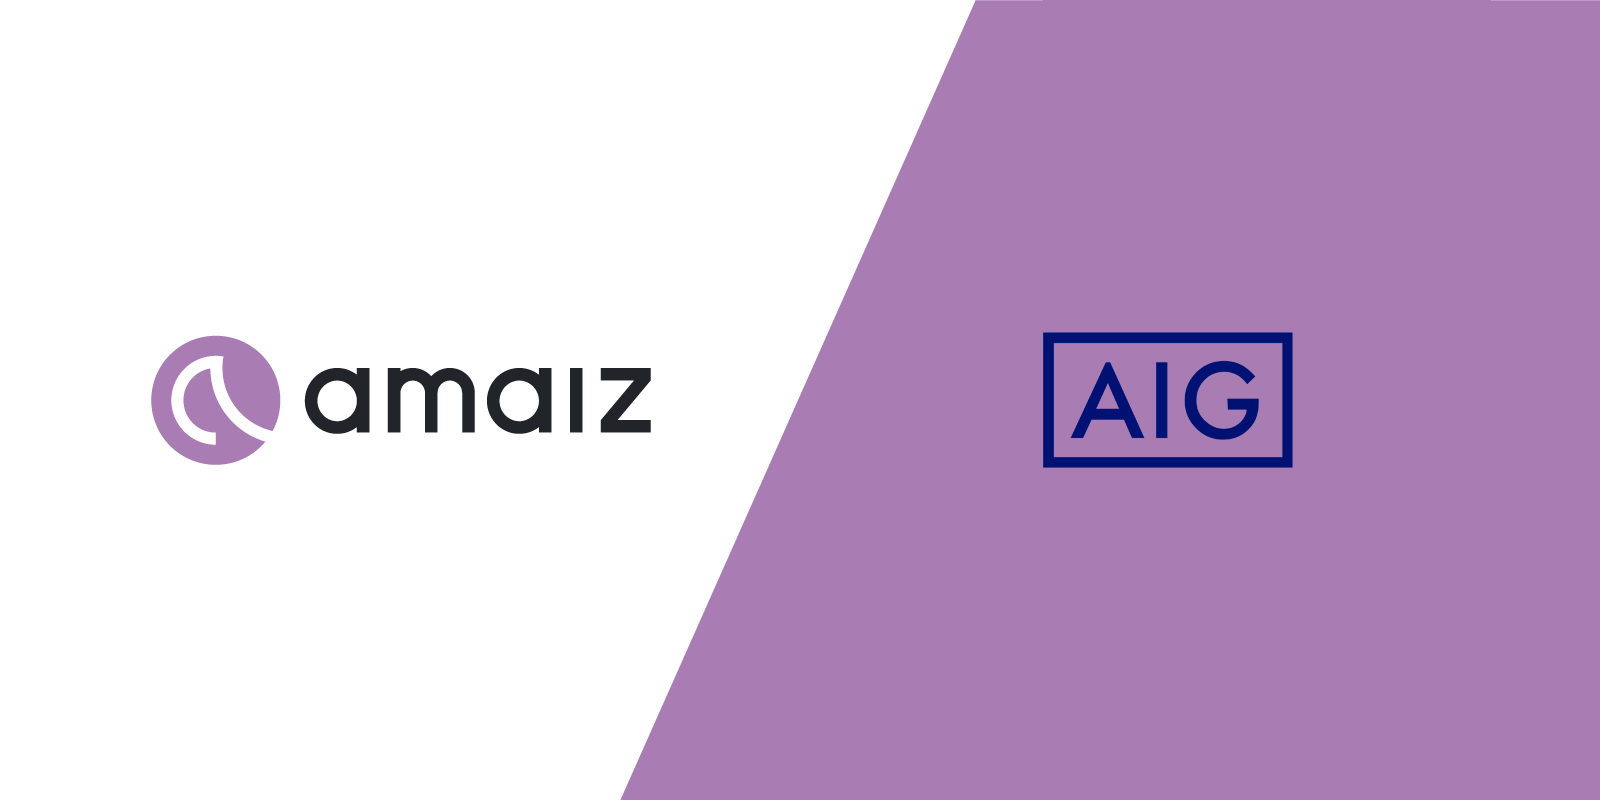 AIG and Amaiz Back Guinness World Record Attempt to Raise Money for Motor Neurone Disease